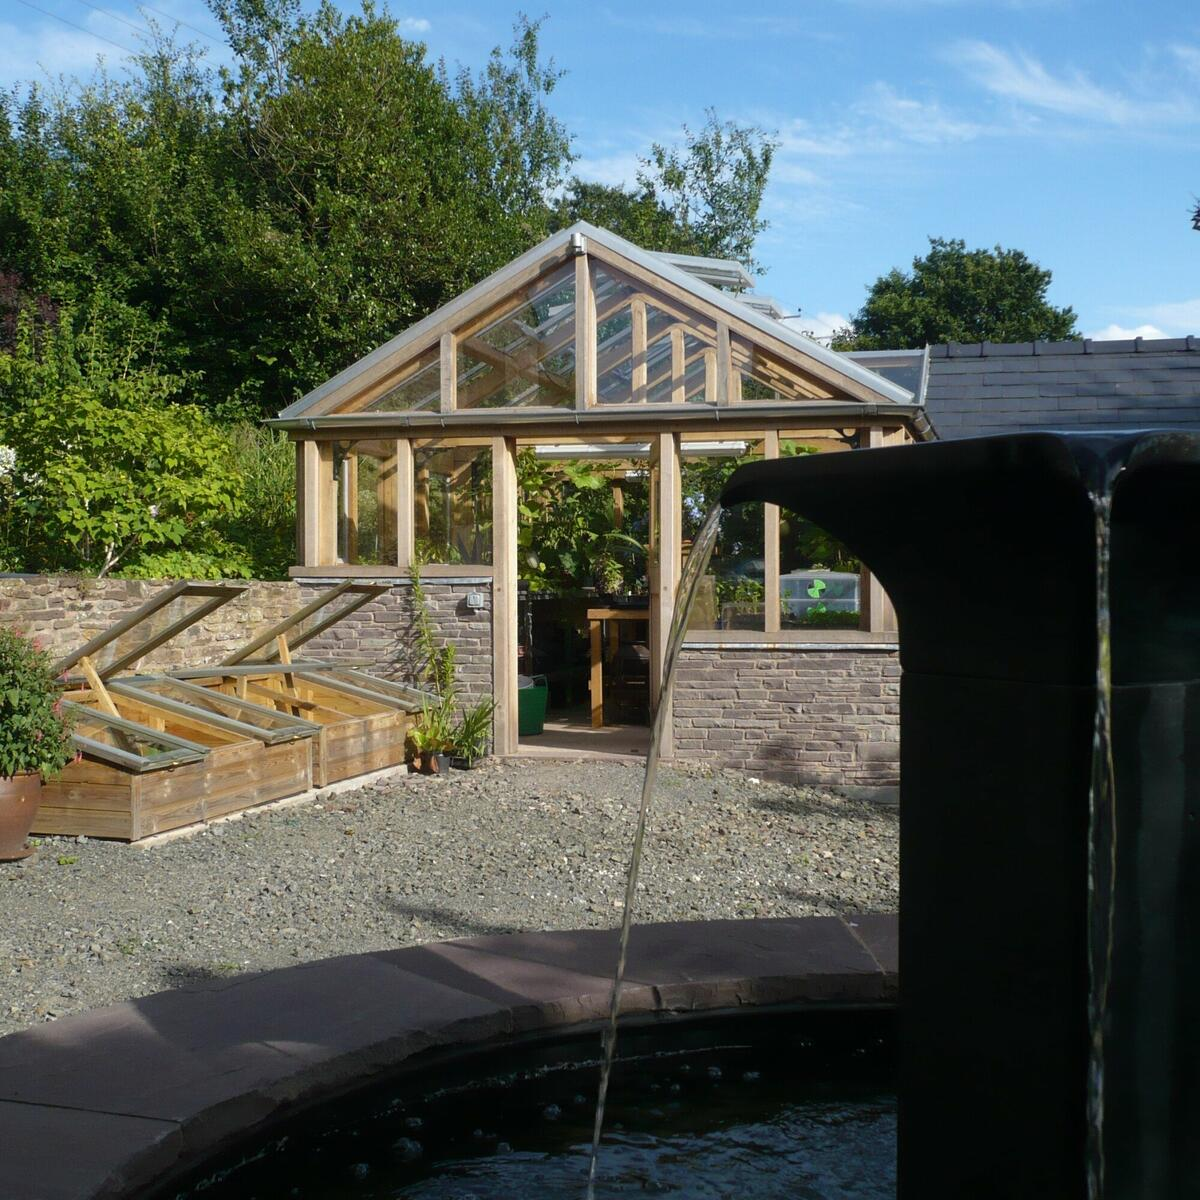 William Pye water feature and greenhouse